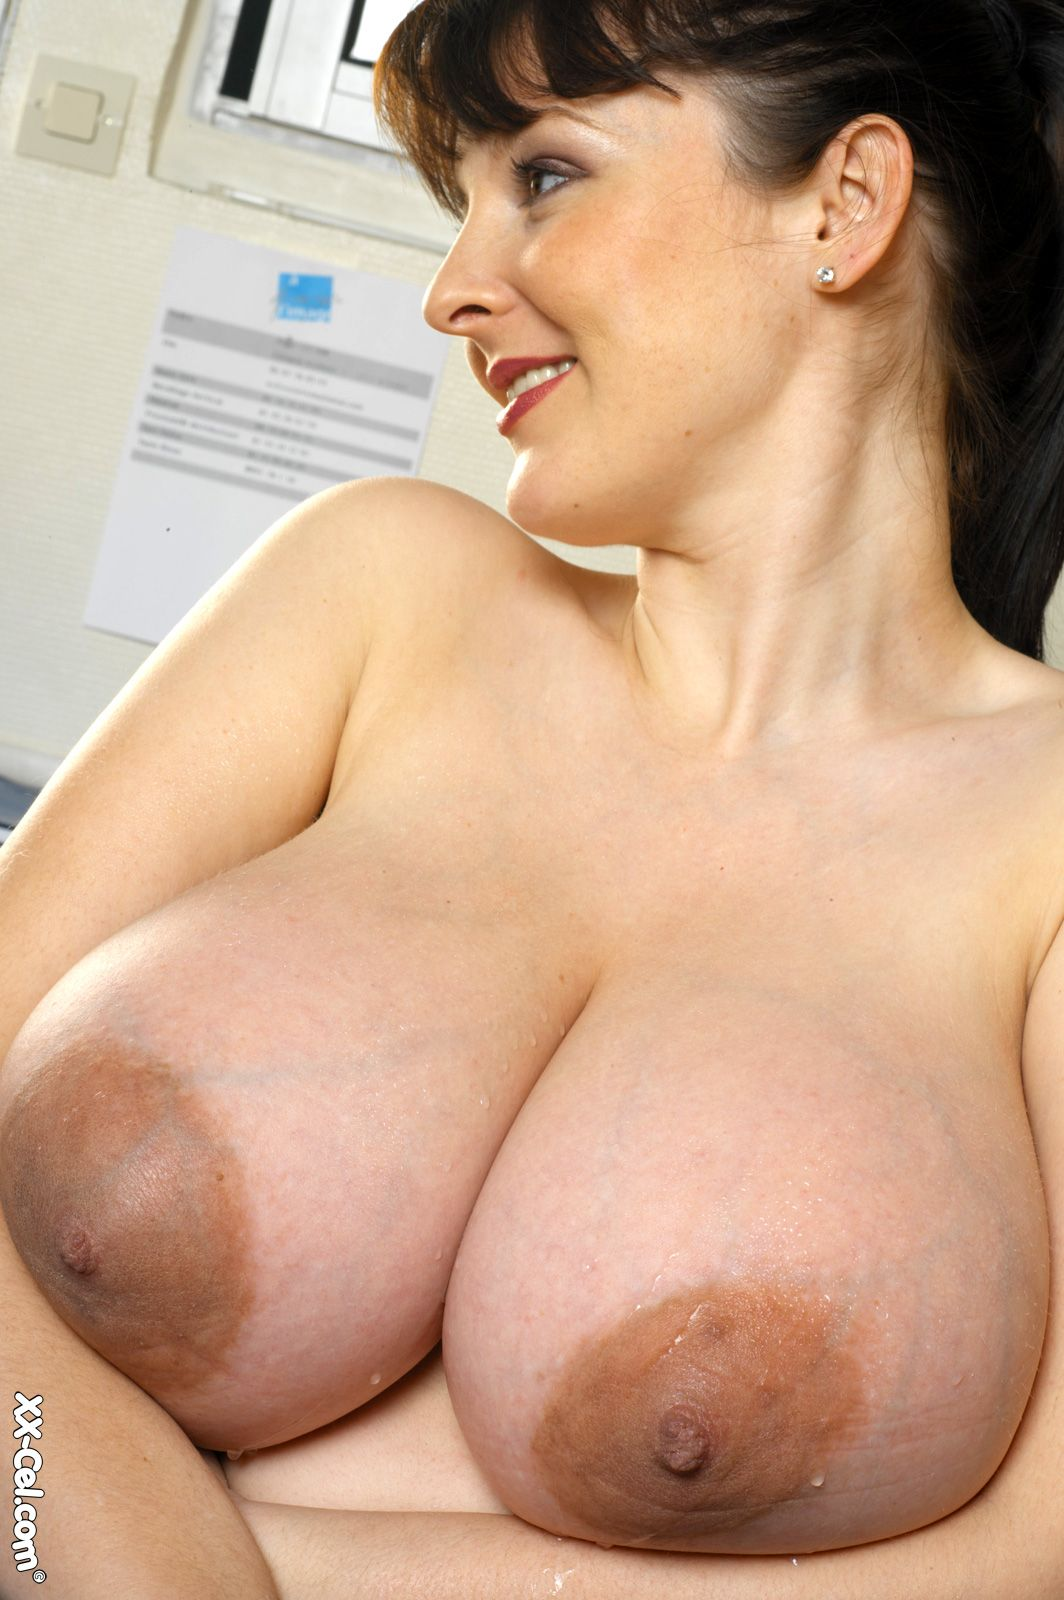 Lorna Morgan's huge tits and brown nipples at Busty Girls Blog